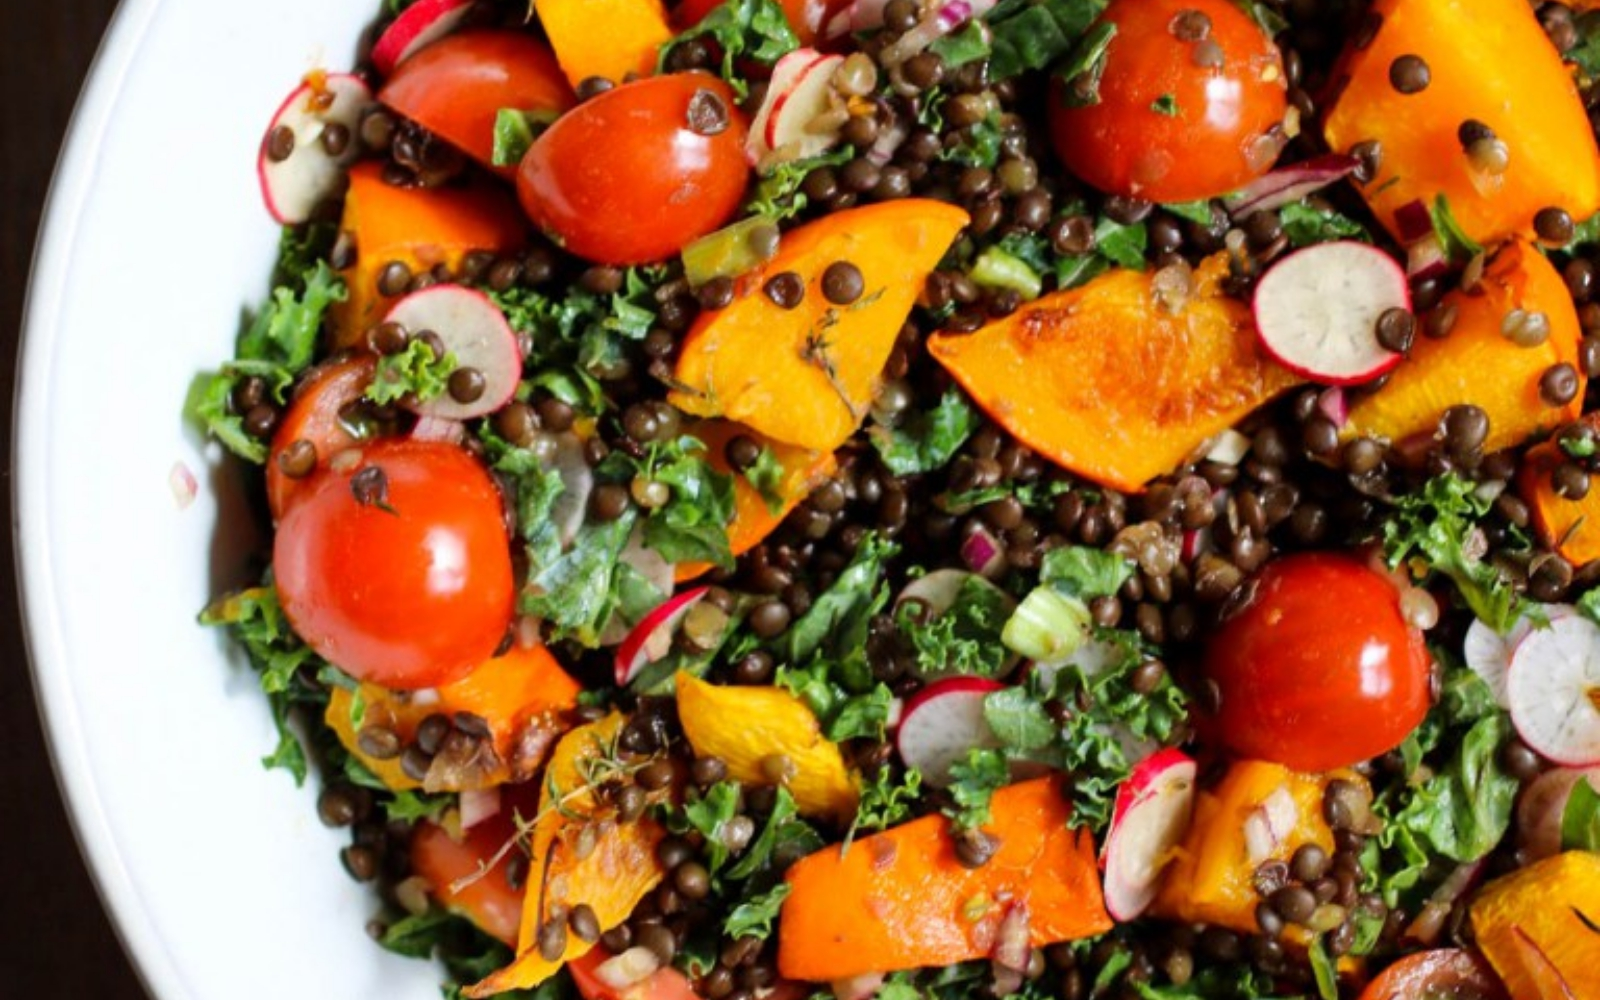 Vegan Pumpkin Salad with Black Lentils, Kale, and Cherry Tomatoes